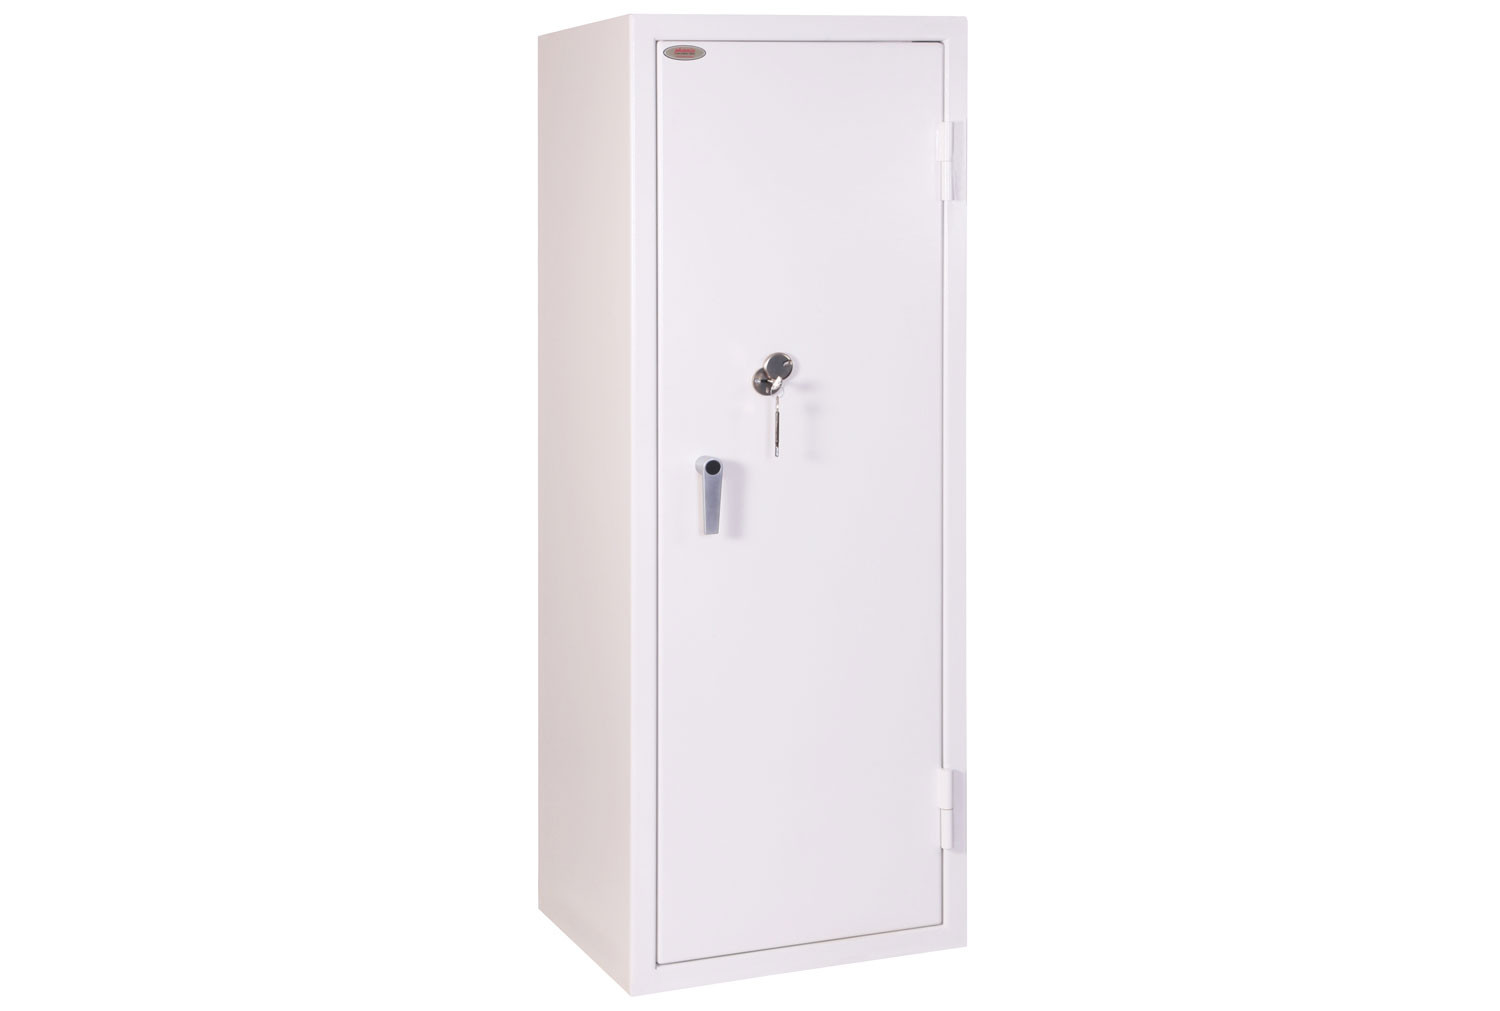 Phoenix Securstore SS1163K Security Safe With Key Lock (385ltrs)